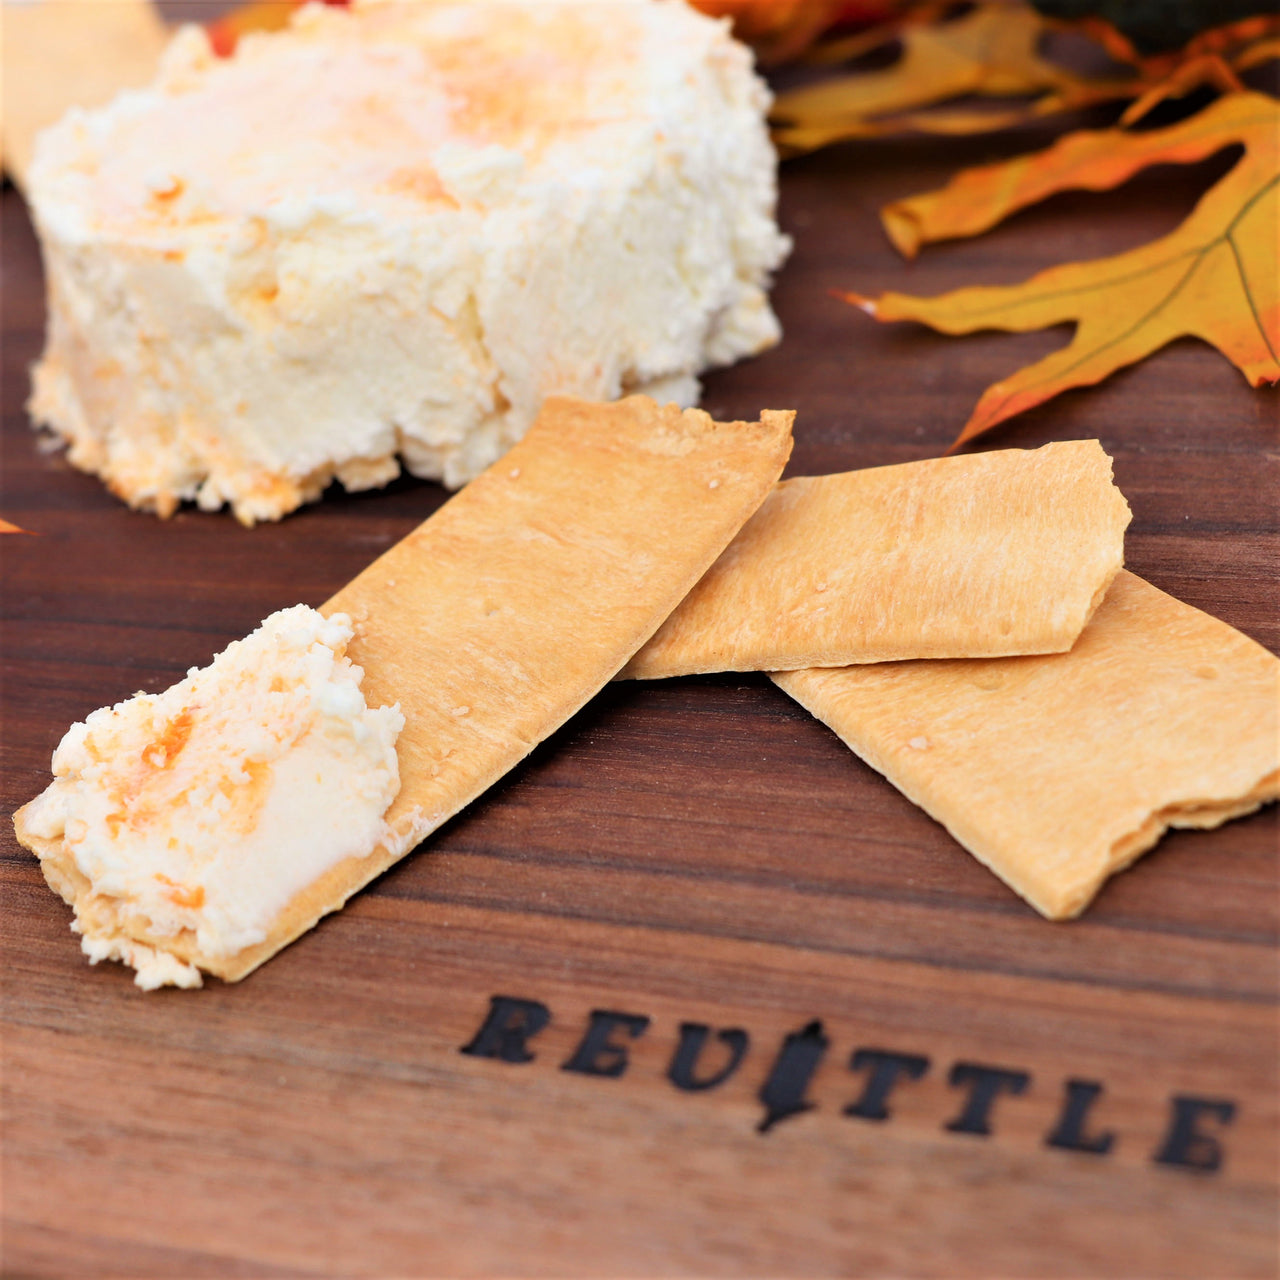 Pumpkin Spice Chevre with Crackers and Fall Foliage | Revittle